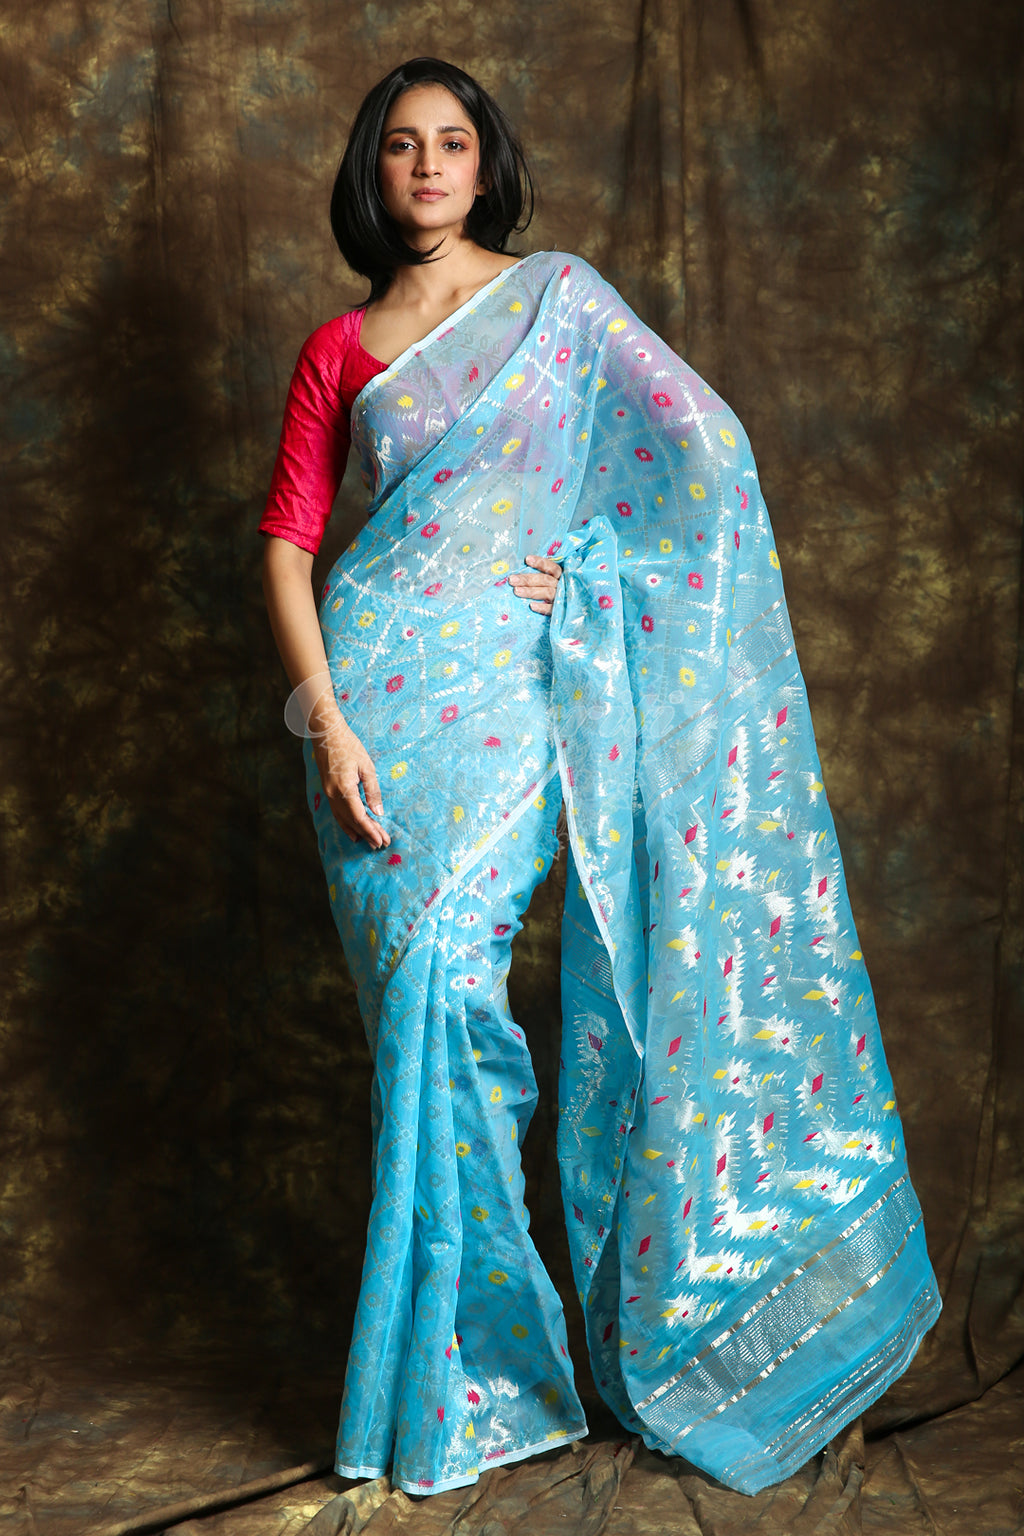 This Sky Blue Jamdani Saree By Charukriti Is Crafted In Cotton And Features Silver Zari Minakari Weaving Details All Over - charukriti.co.in